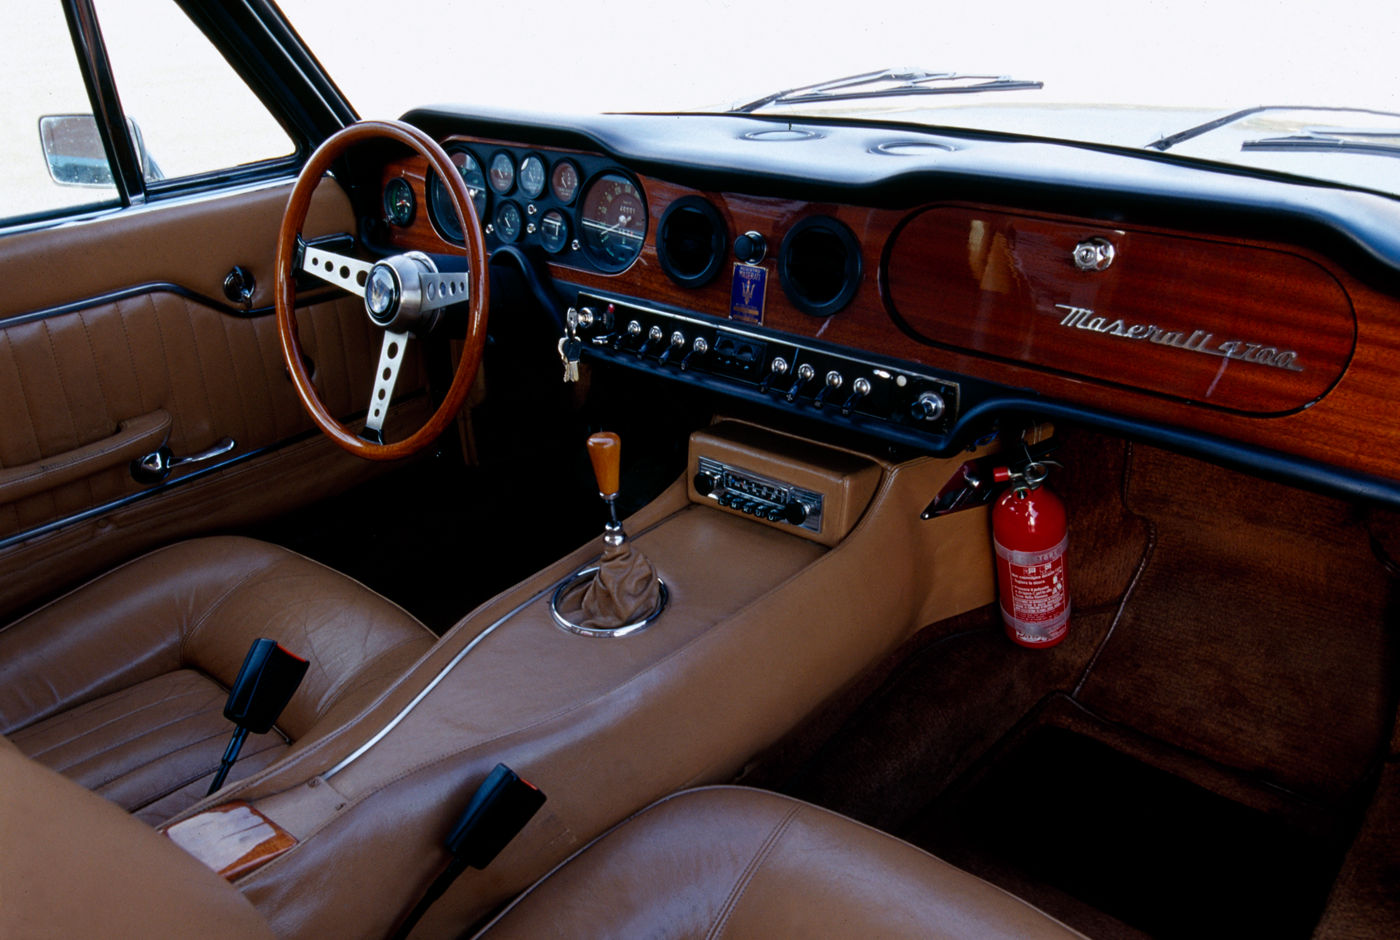 1966 Maserati Mexico - interior view of the classic sports car four-seater model